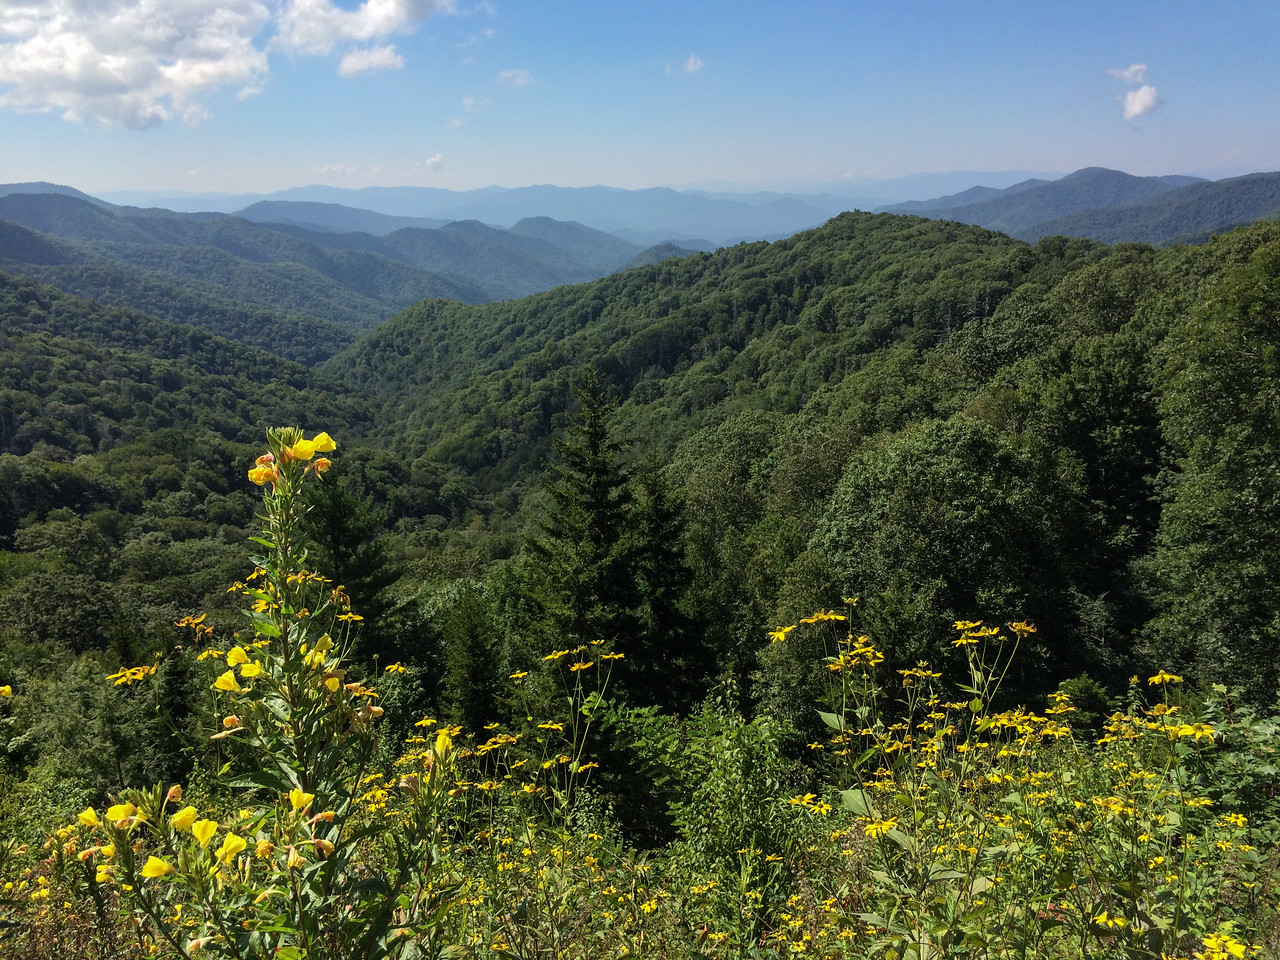 View from the boardwalk on Newfound Gap Road